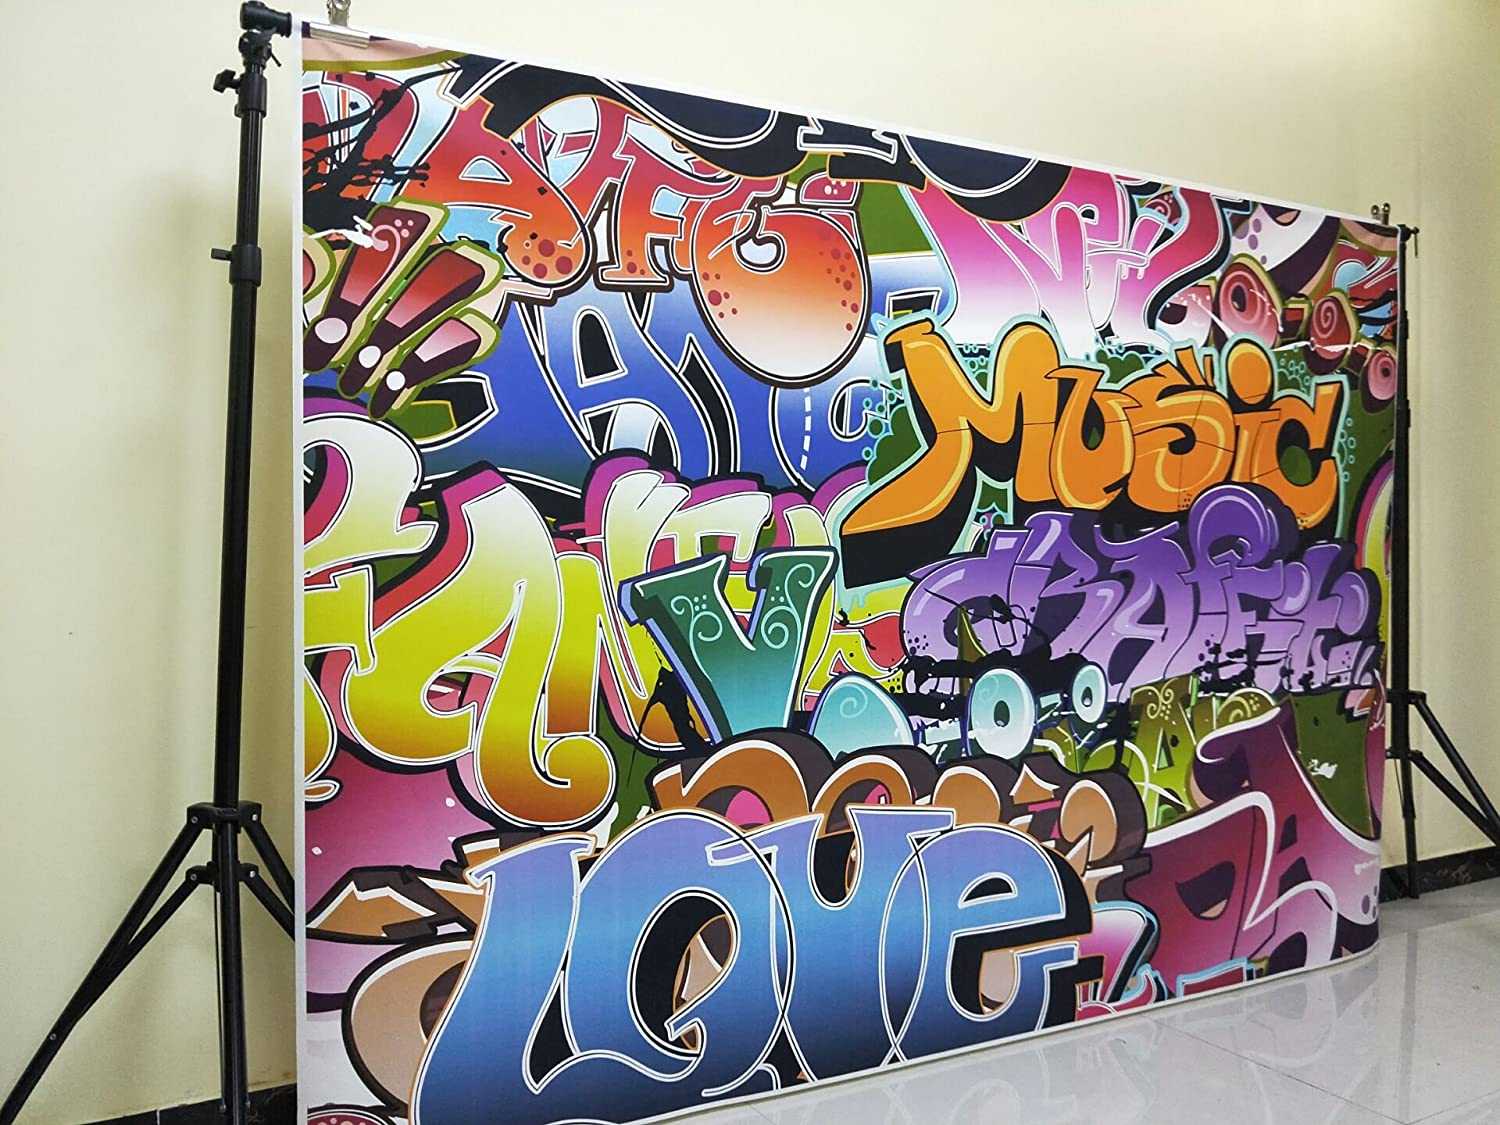 5X7ft 80s Party Backdrop Made in The 80s Theme Retro Style Photo Backdrop 80s Birthday Background Hip Hop Party Photobooth Props W-1513